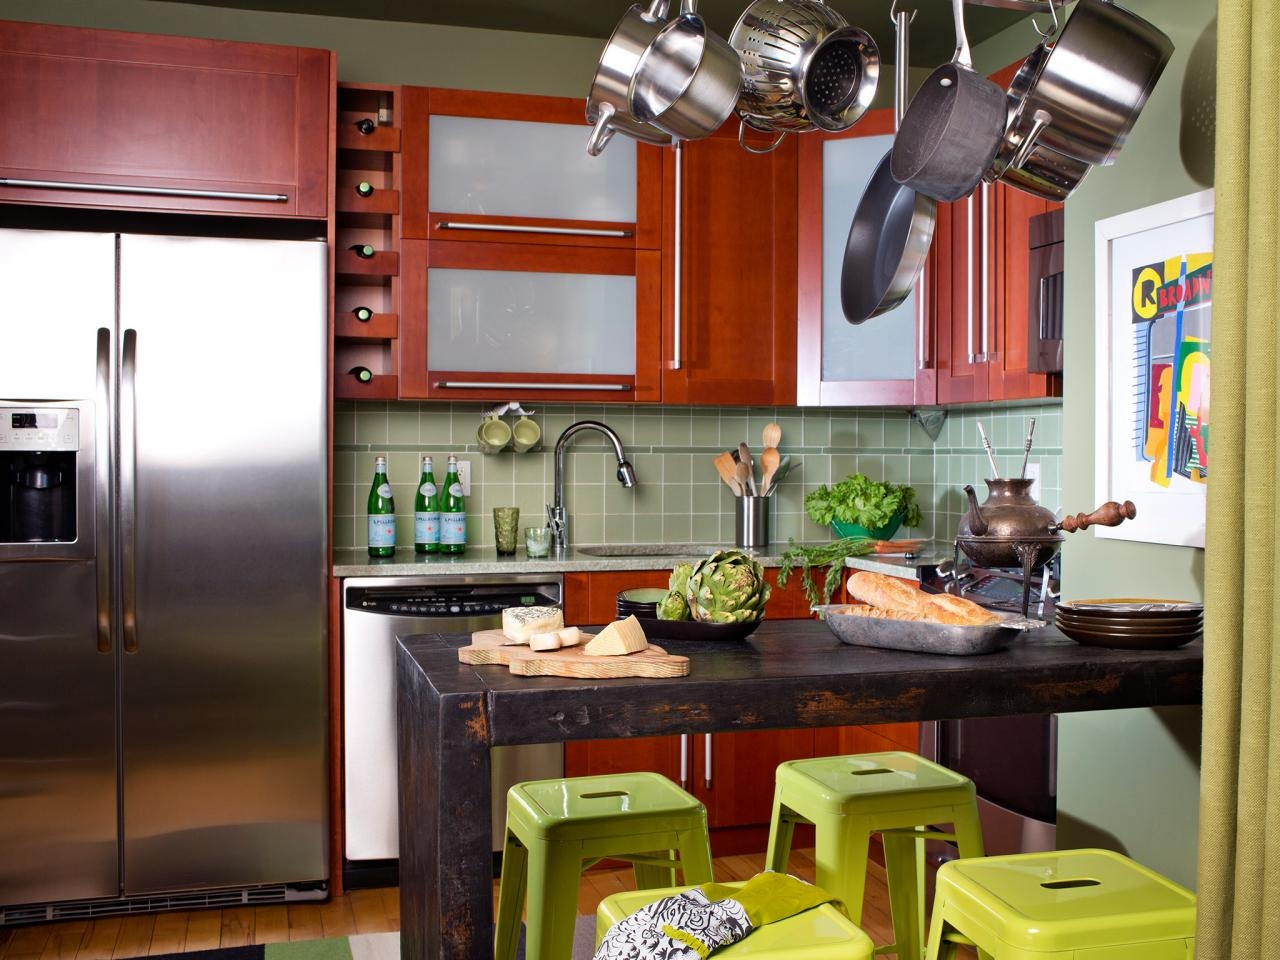 Kitchen Cabinet Designs For Small Space